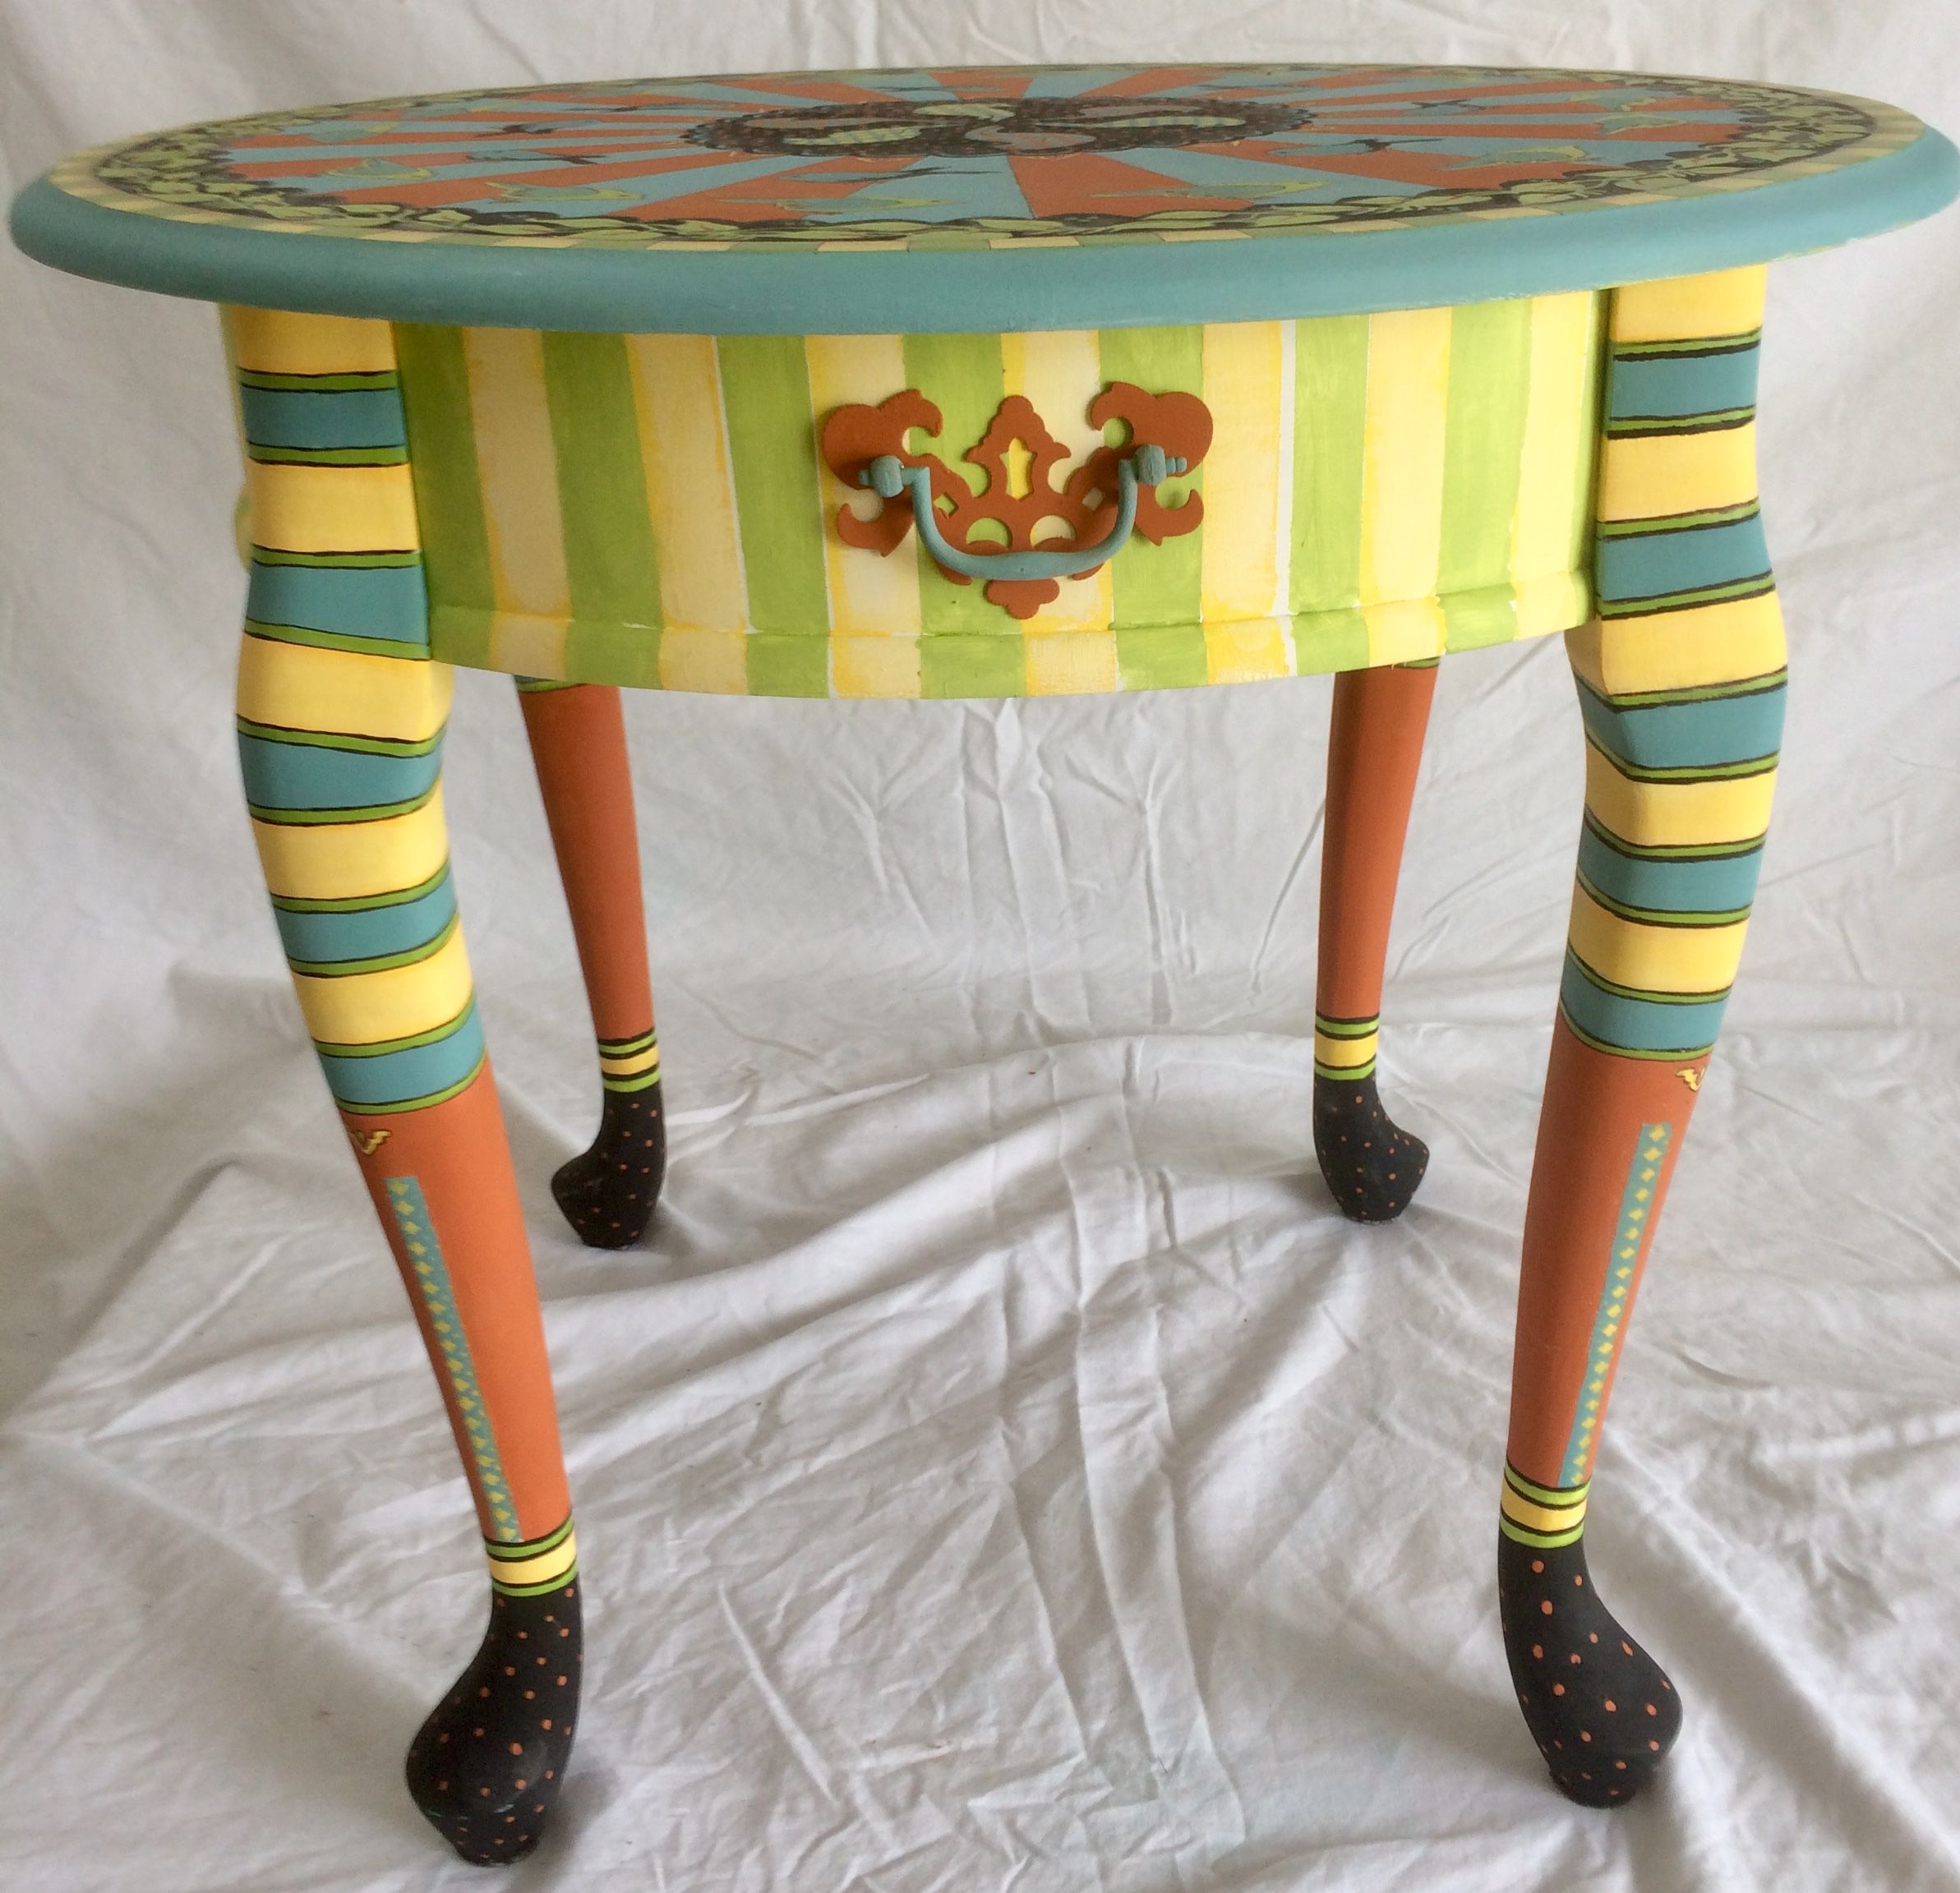 Hand Painted Accent Table Available At Curiousartco Whimsical Painted Furniture Whimsical Furniture Painted Furniture